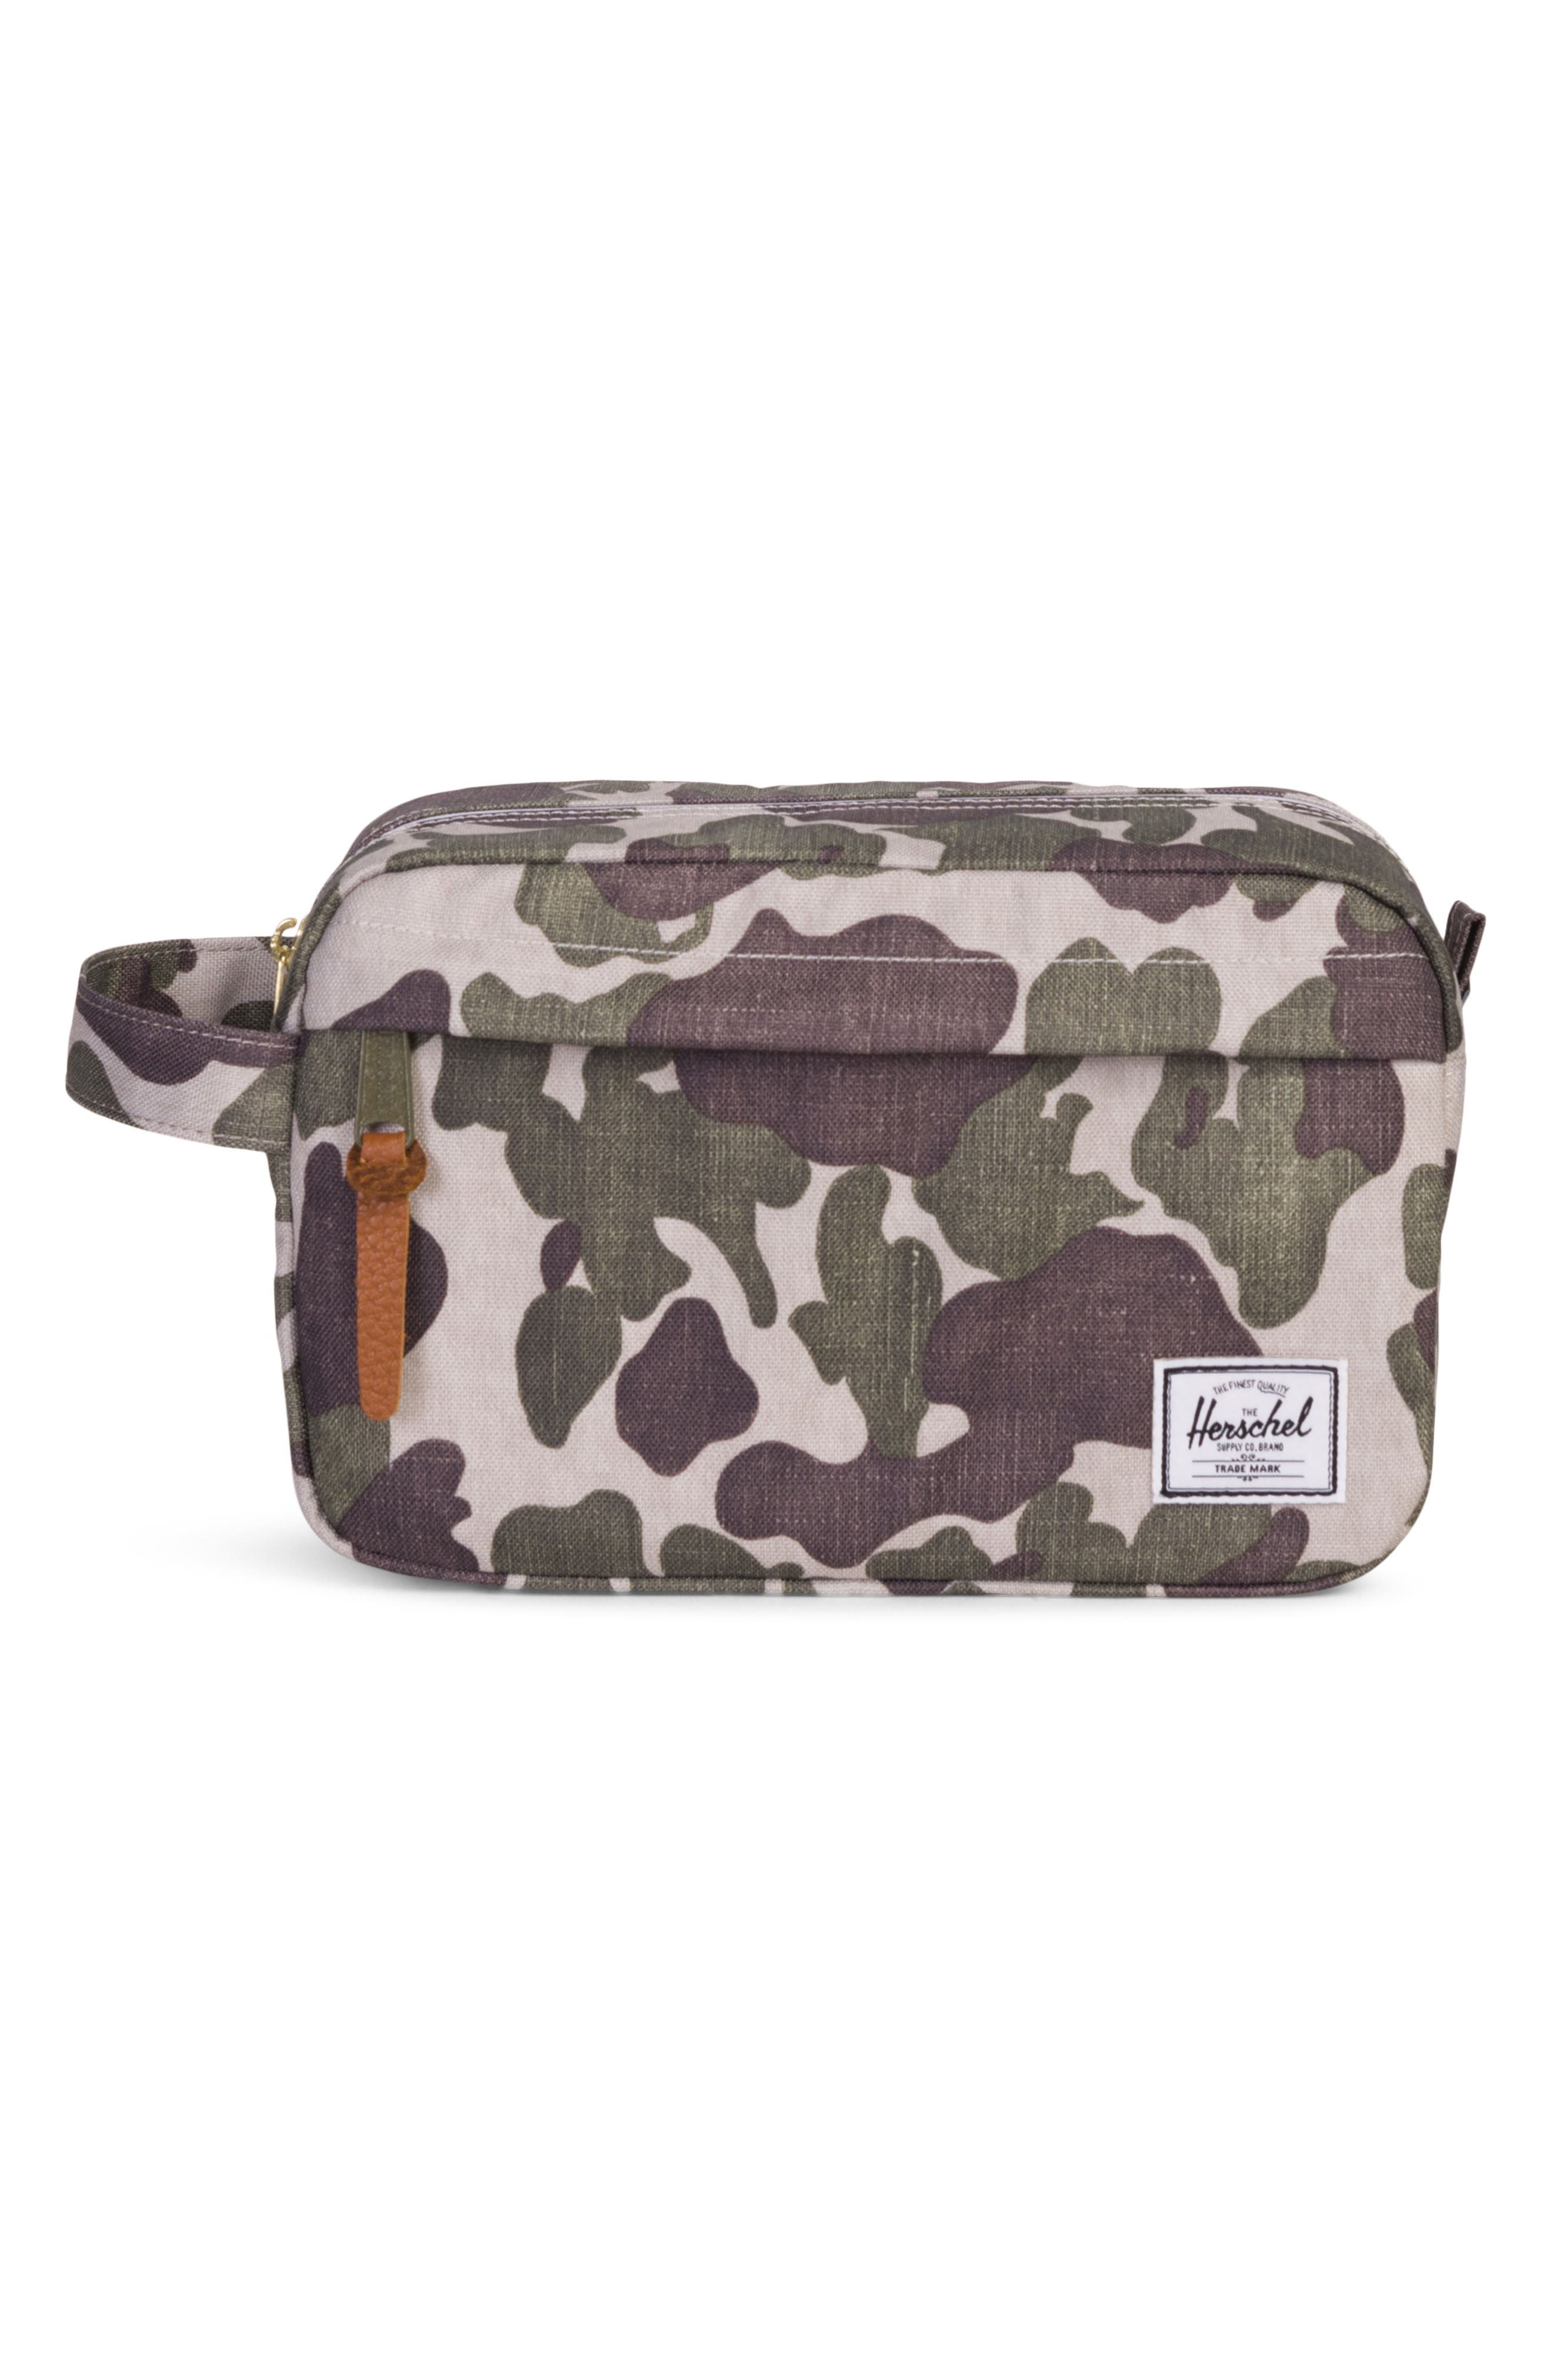 'Chapter' Toiletry Case,                             Main thumbnail 1, color,                             FROG CAMO